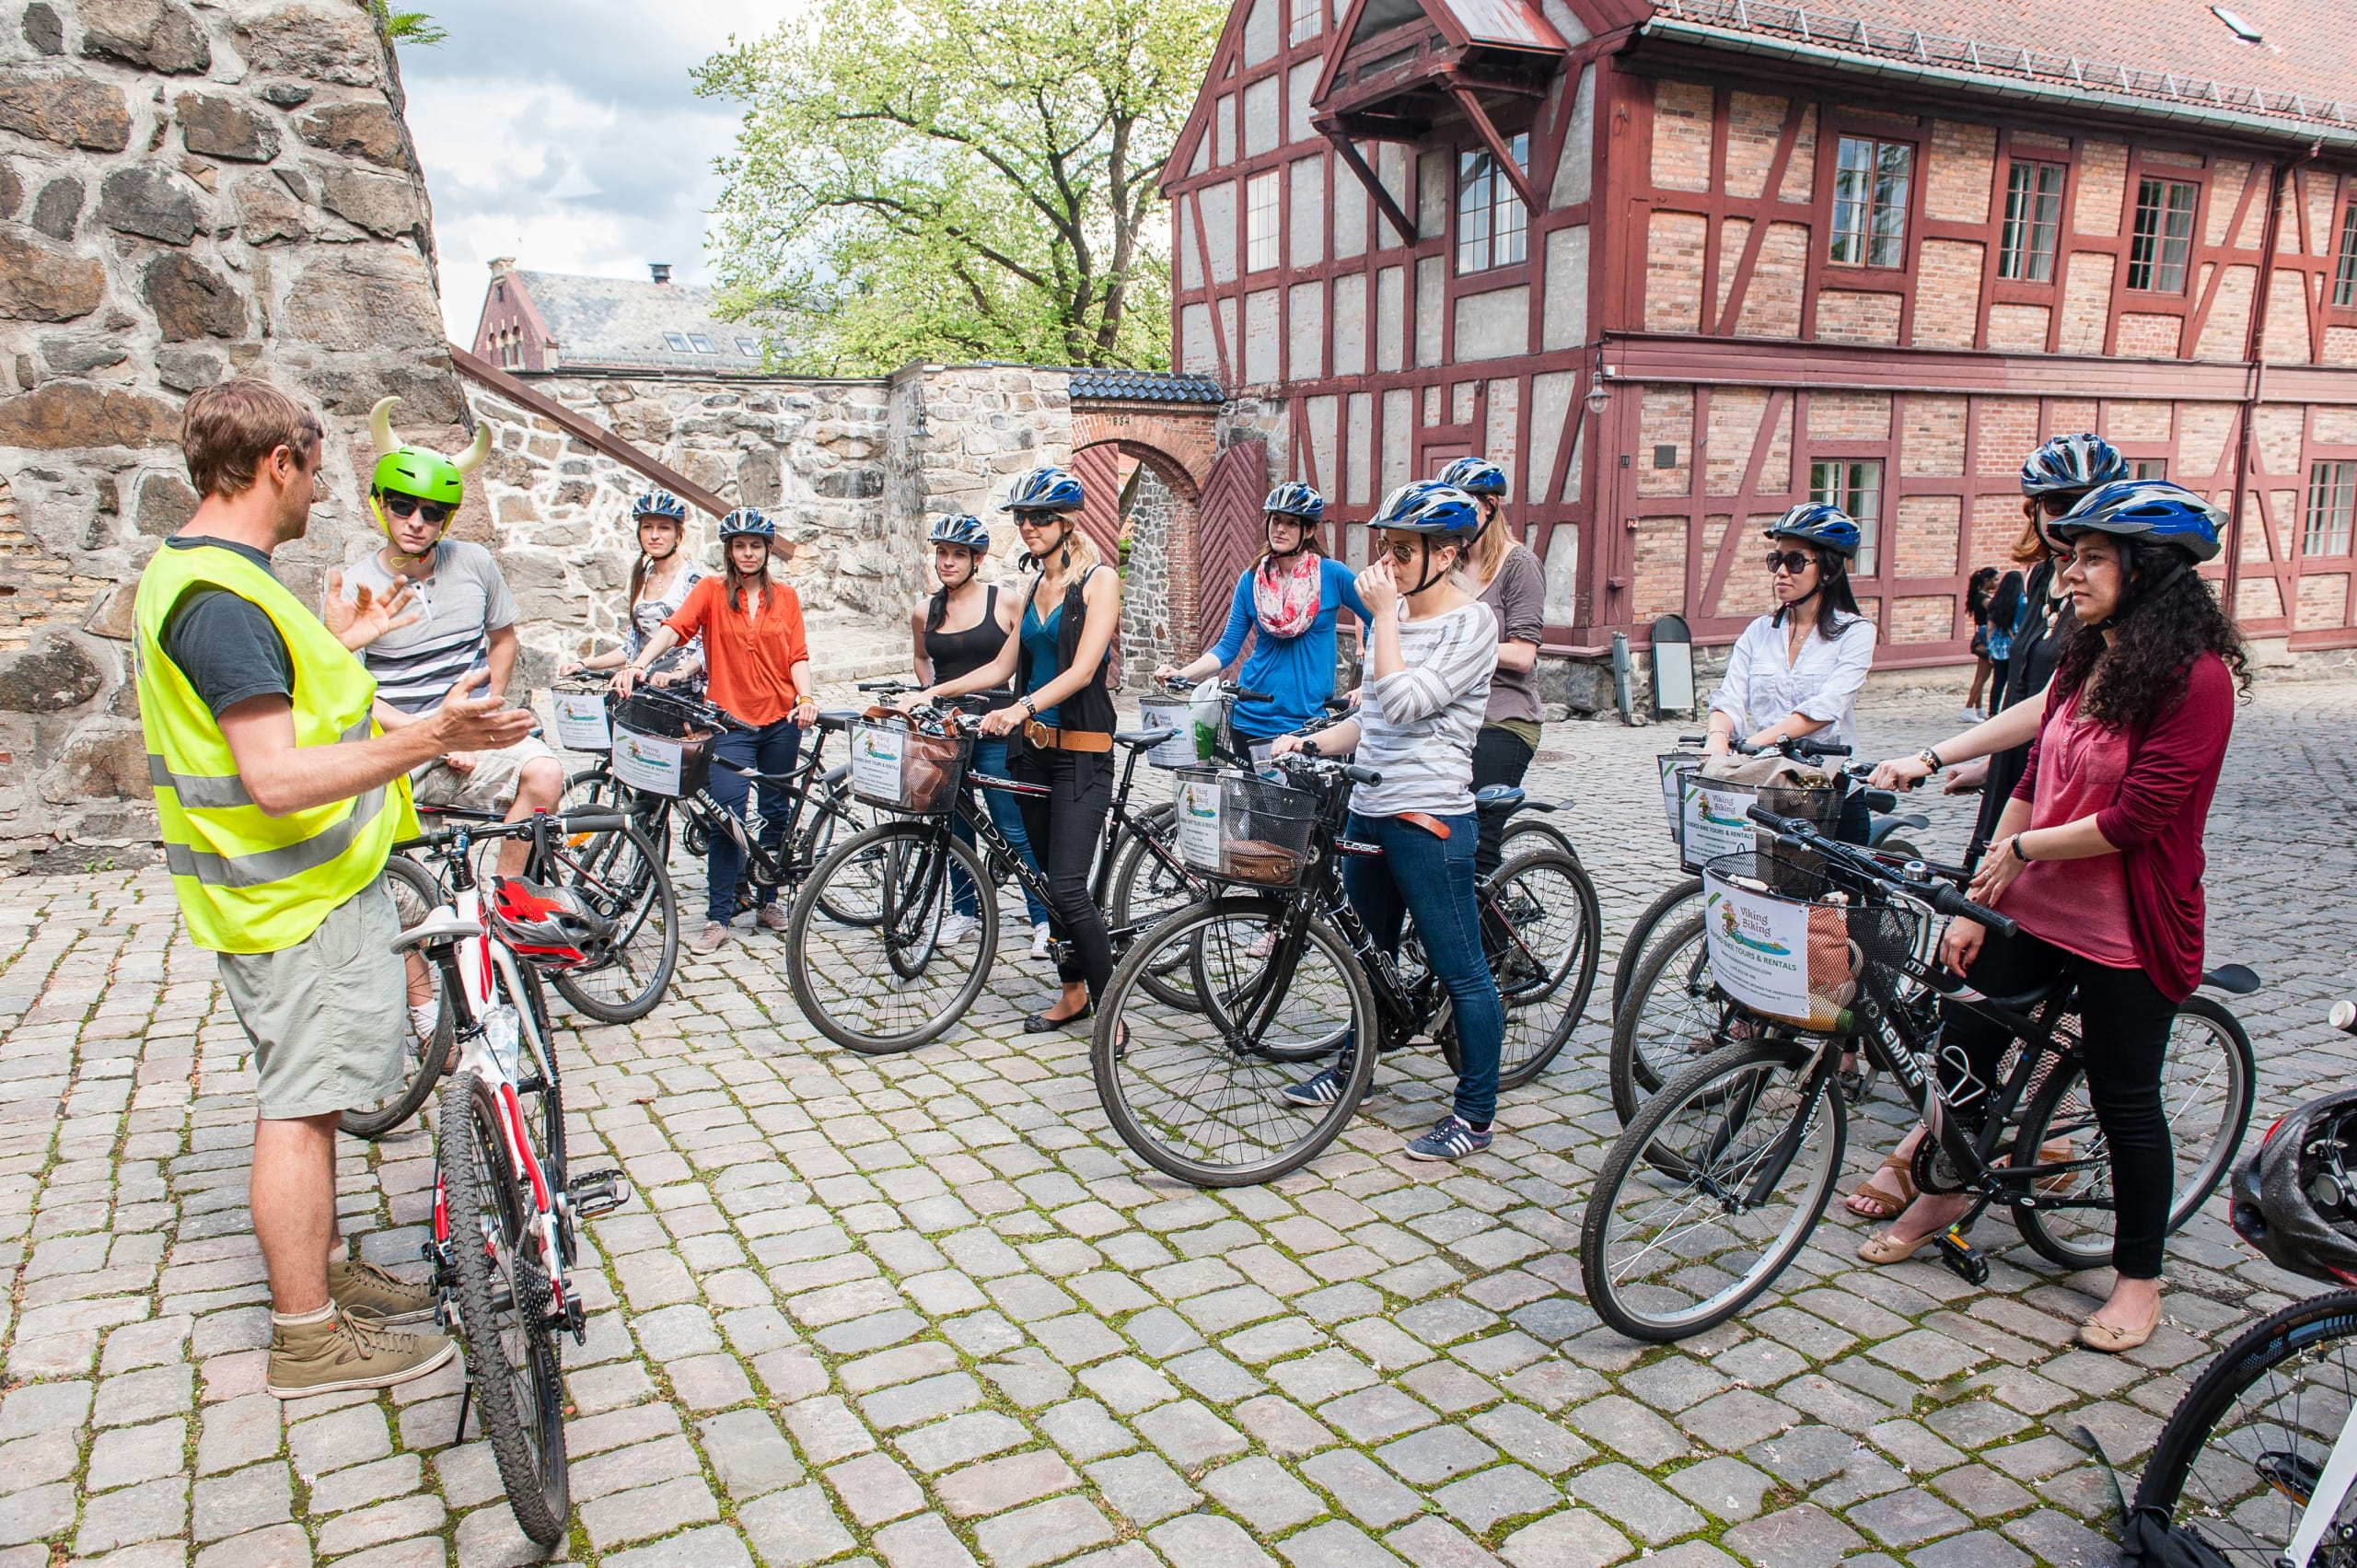 A group of tourists are being guided around historical parts of Oslo by bikes.